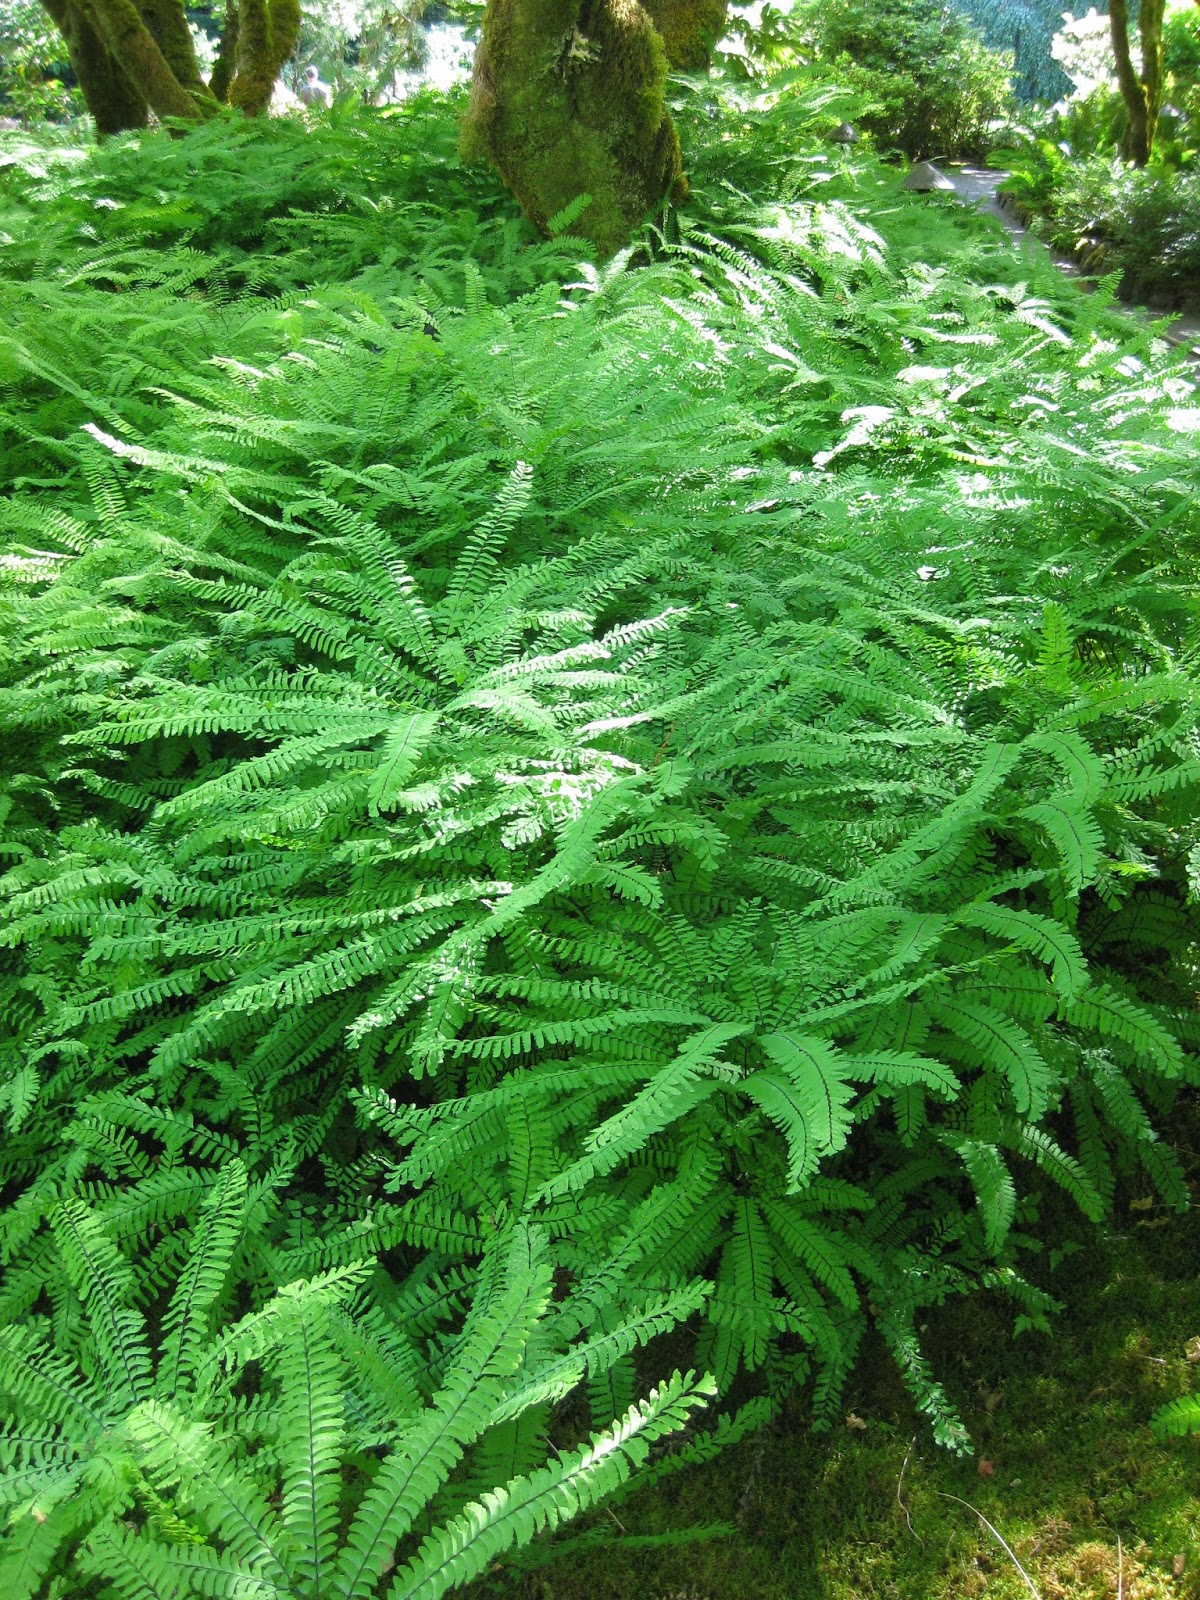 rbg has a fern u0026 moss garden that displays well over 200 different types of ferns from around the world i always appreciated ferns but not fully until i - Fern Types